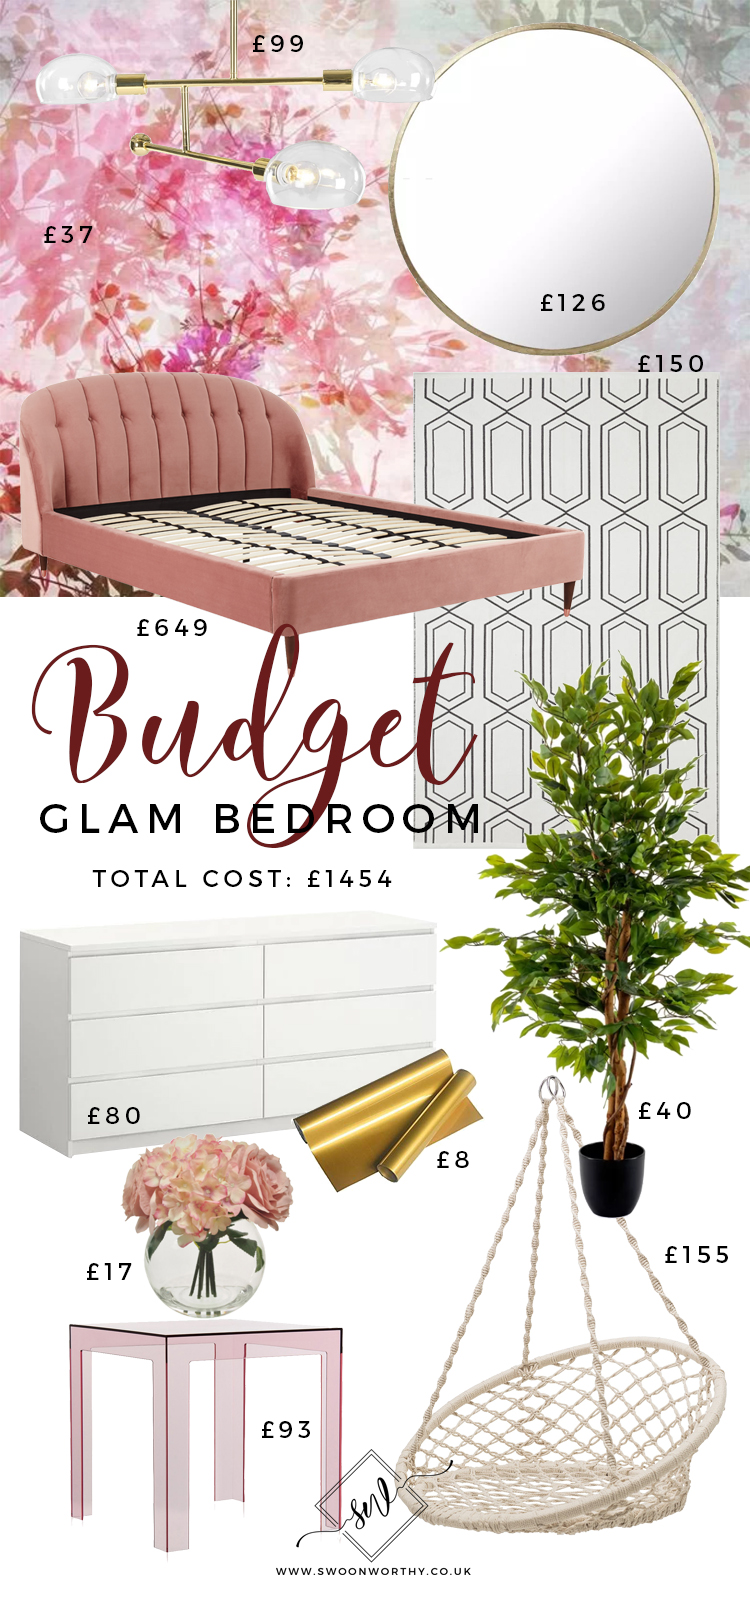 Budget Glam Bedroom Total Price £1454